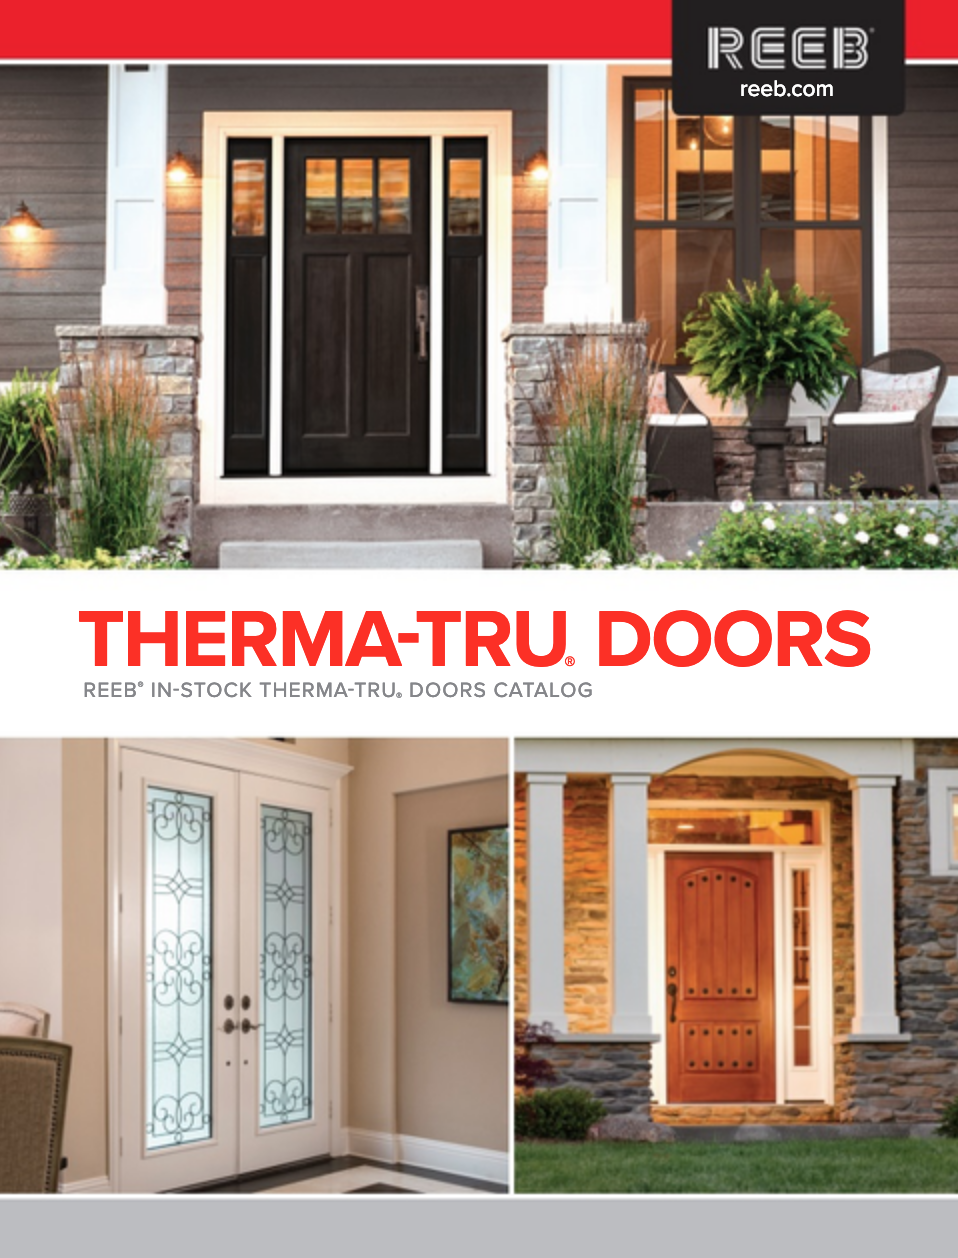 Choosing a Therma-Tru® door means designing an inspired entrance with the confidence that it will perform for years to come. Whether it's Classic or Contemporary, or somewhere in between, Therma-Tru offers a wide selection to complement the architecture of your home and your sense of style…while providing you the best warranties in the industry. This is what makes Therma-Tru the brand building professionals prefer most. With a complete door system engineered with craftsman precision and backed by more than 50 years of industry experience, you can be confident that it will perform as exceptionally as it looks.